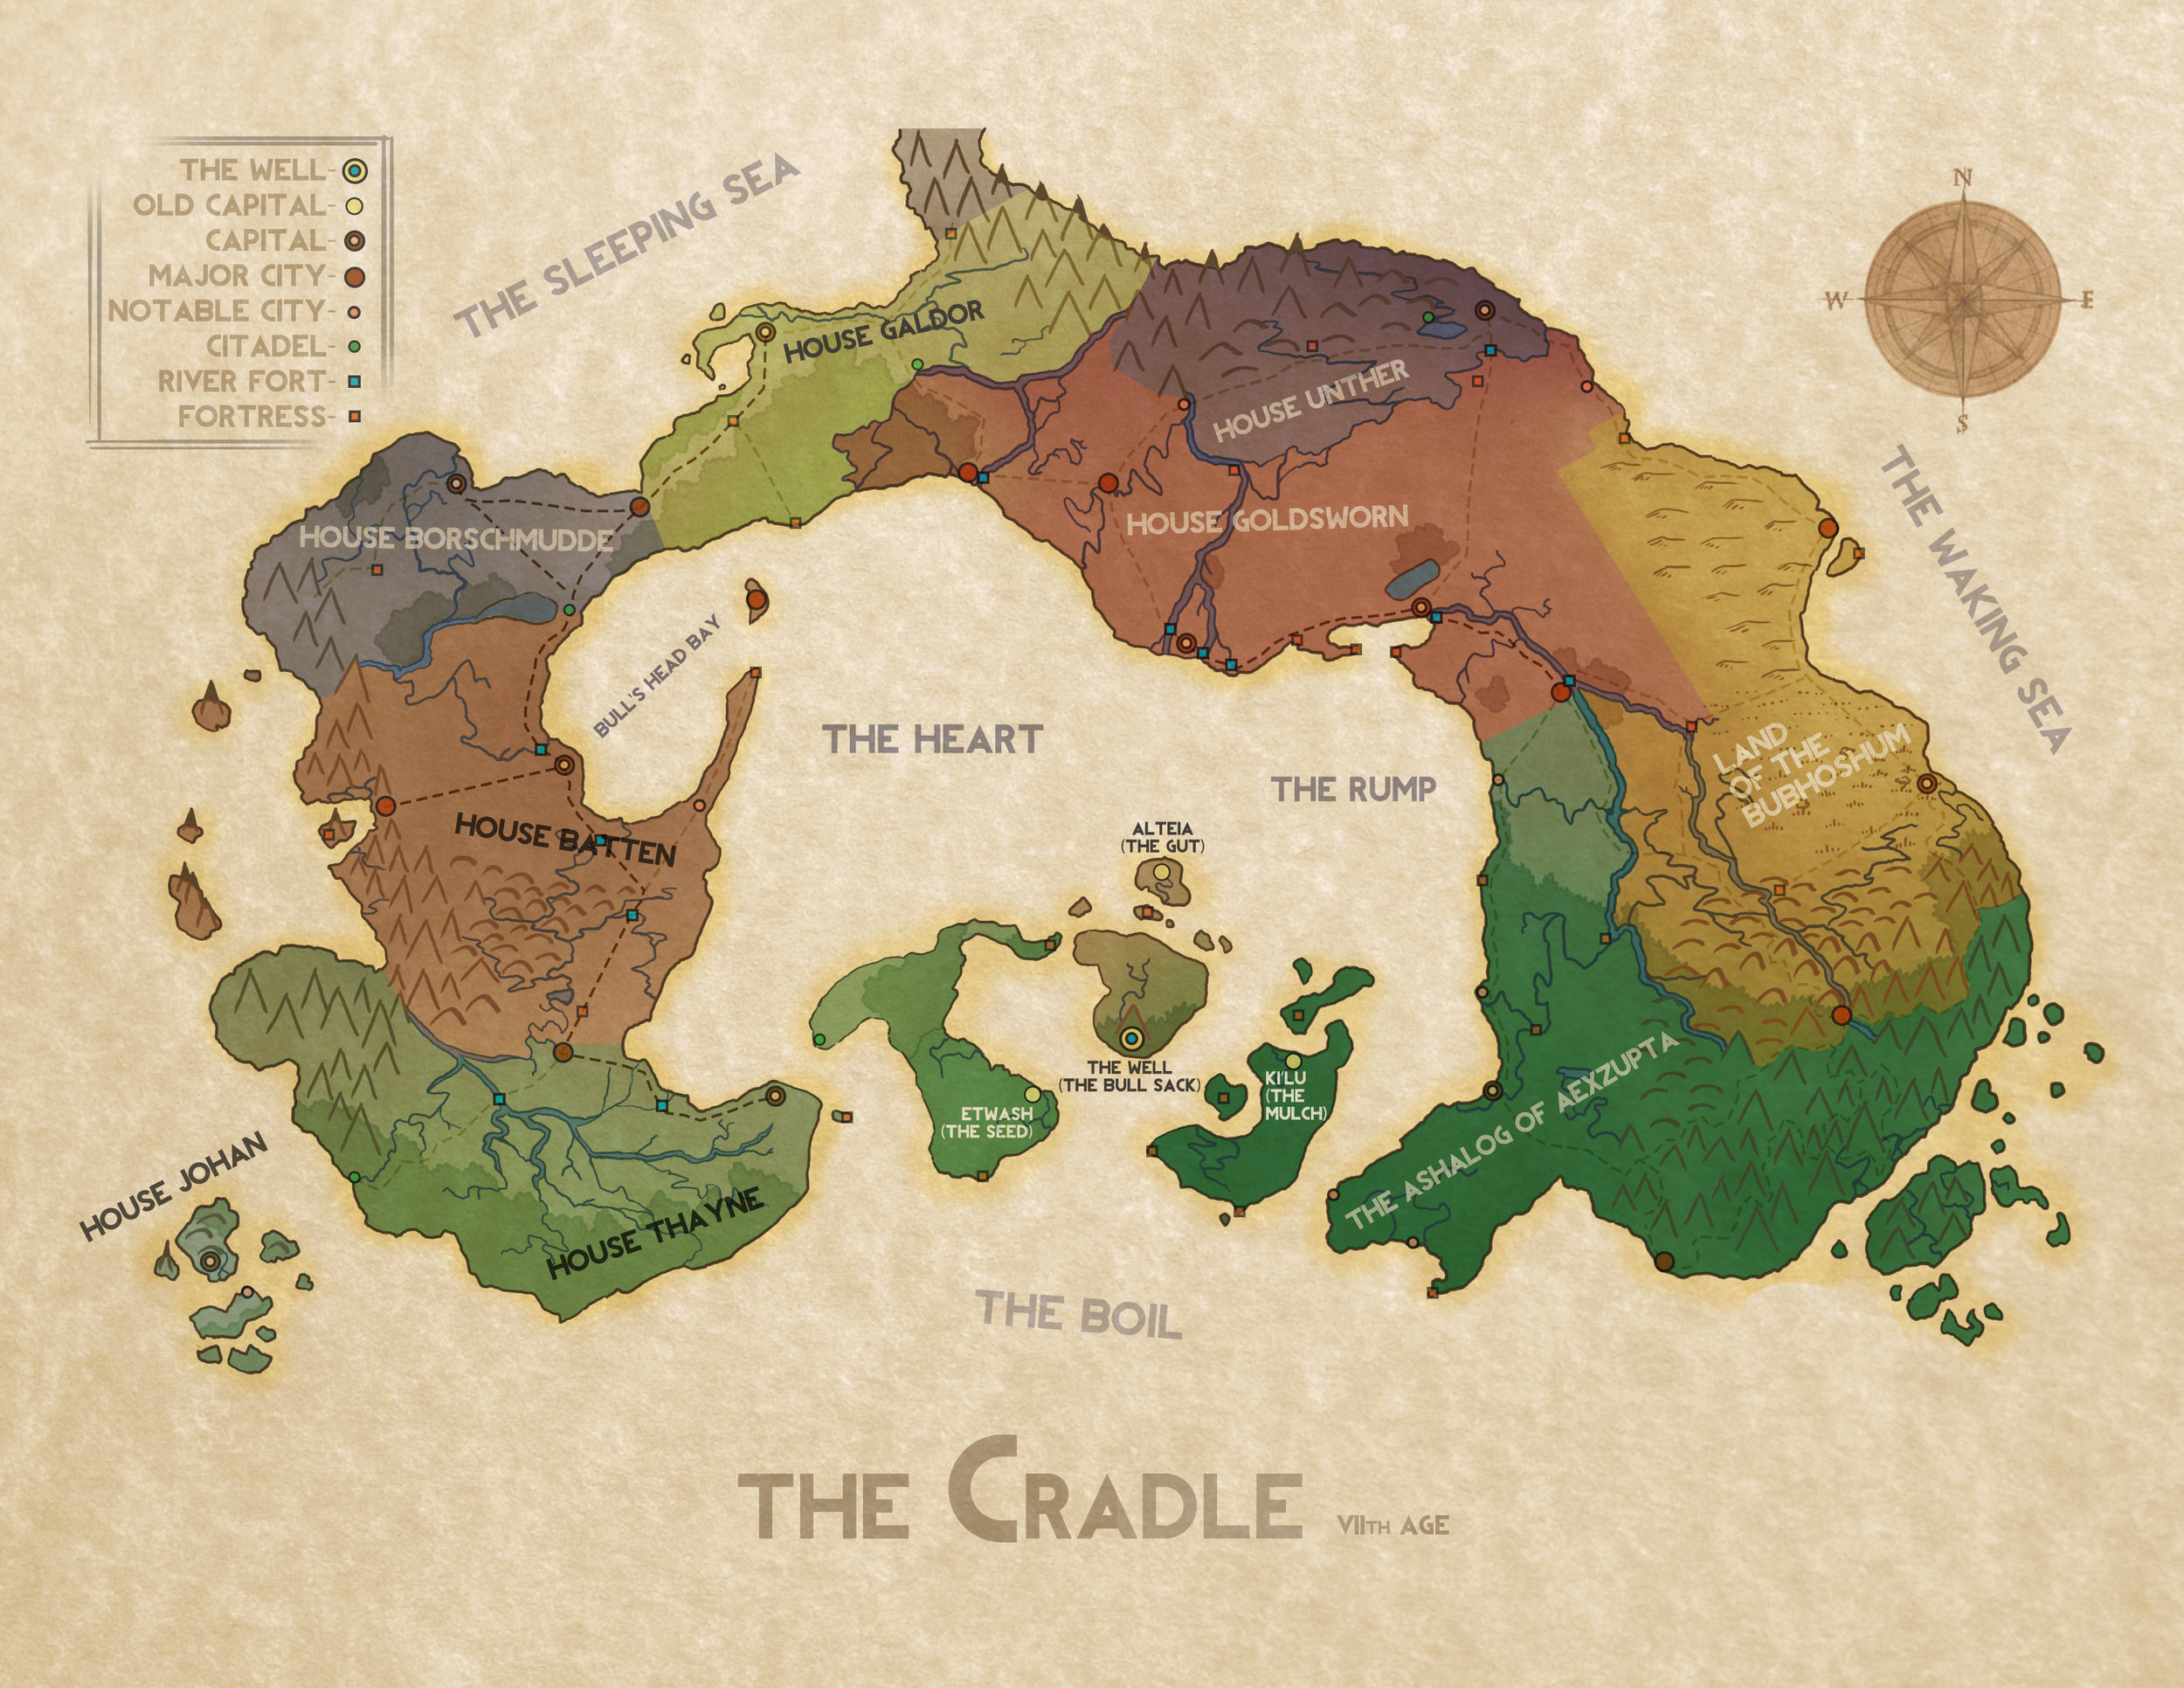 Map of The Cradle